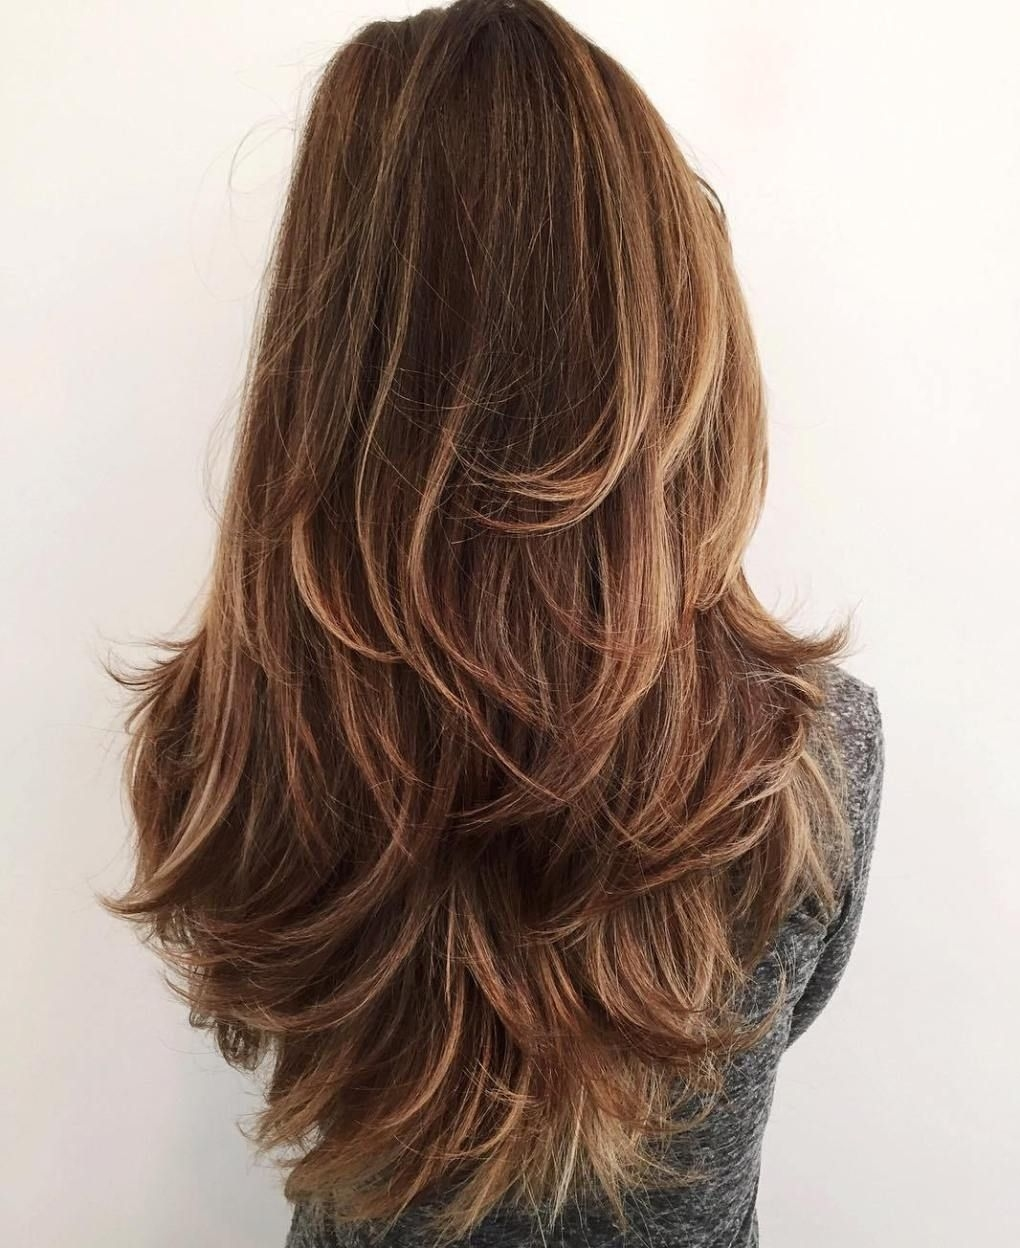 50 Lovely Long Shag Haircuts For Effortless Stylish Looks   Hair with regard to Haircuts For Thick Long Hair With Layers